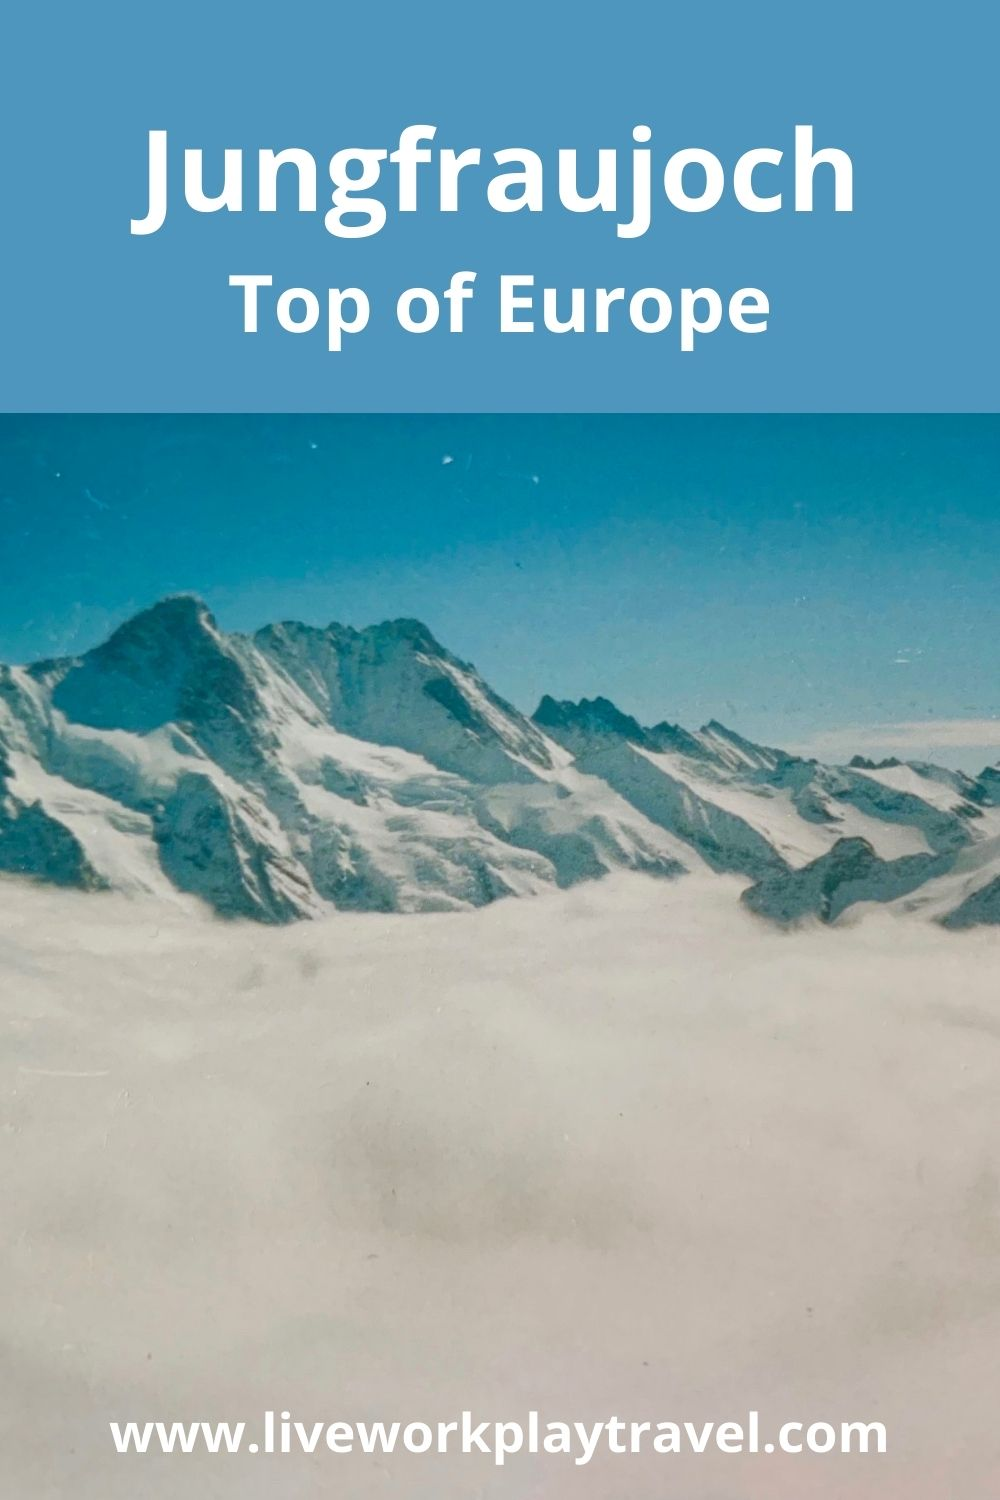 At The Top Of The Jungfraujoch You Will Have Views Over The Glacier And Be Standing On Top Of Europe.